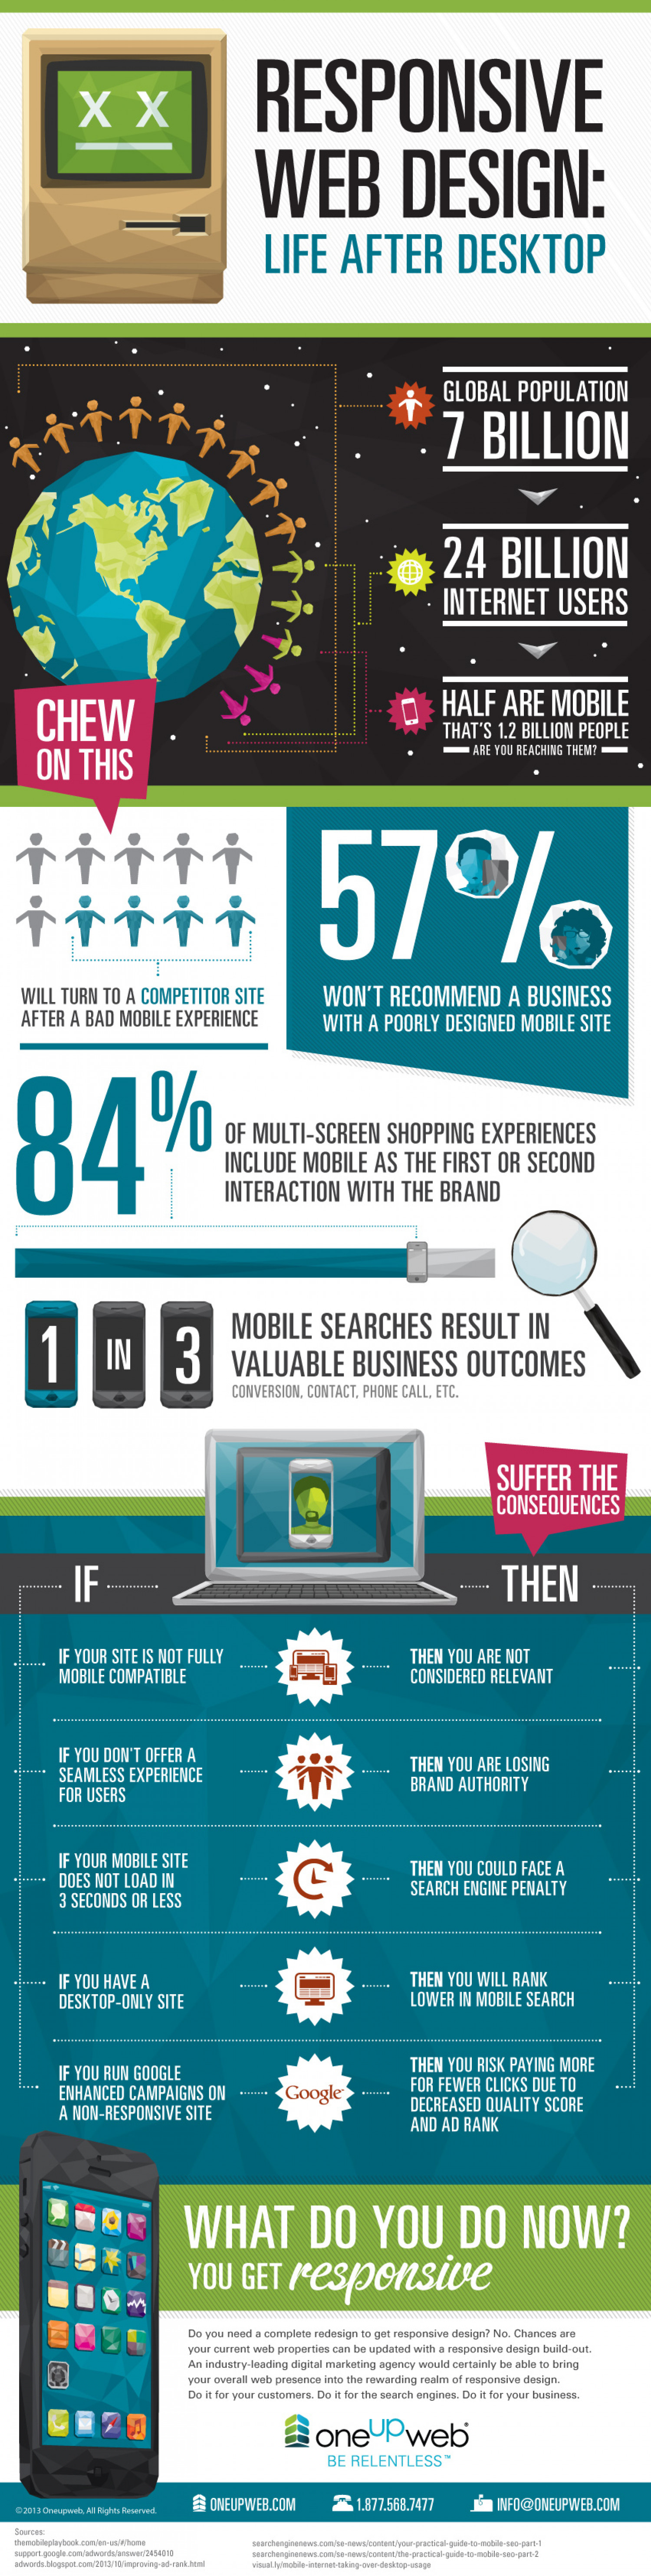 Responsive Web Design: Life After Desktop Infographic